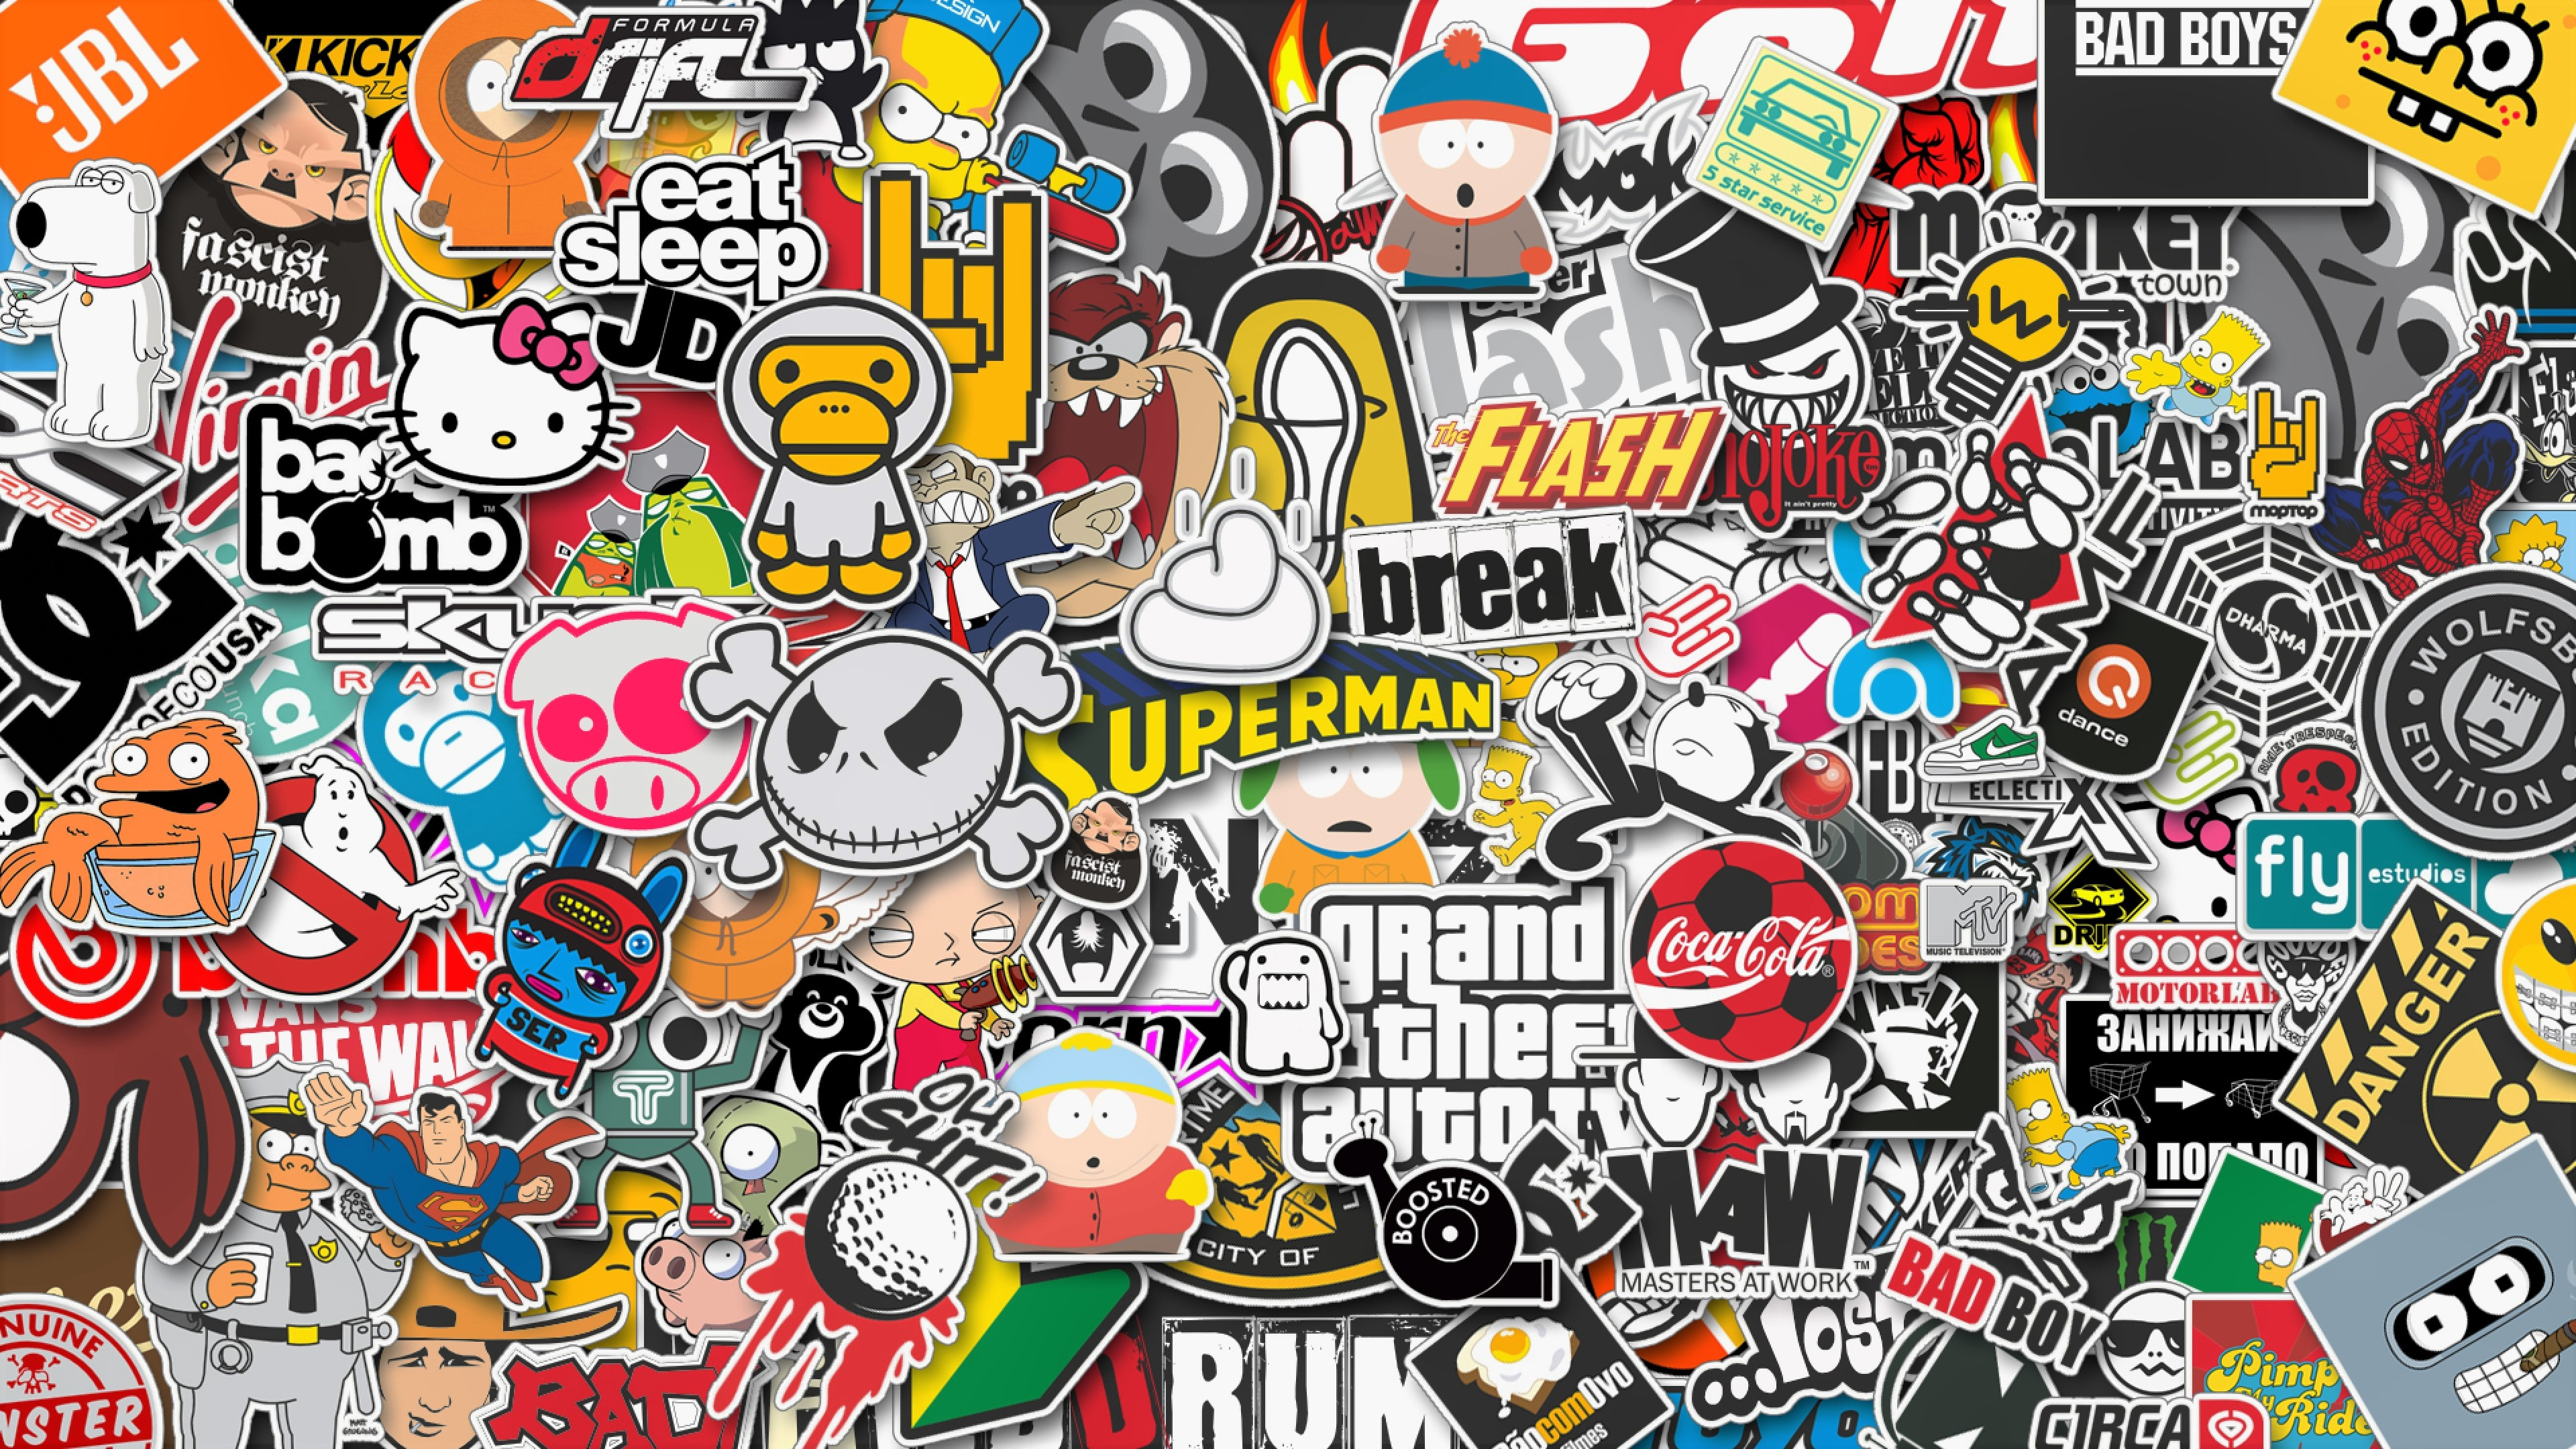 Stickers Style Hd Artist 4k Wallpapers Images